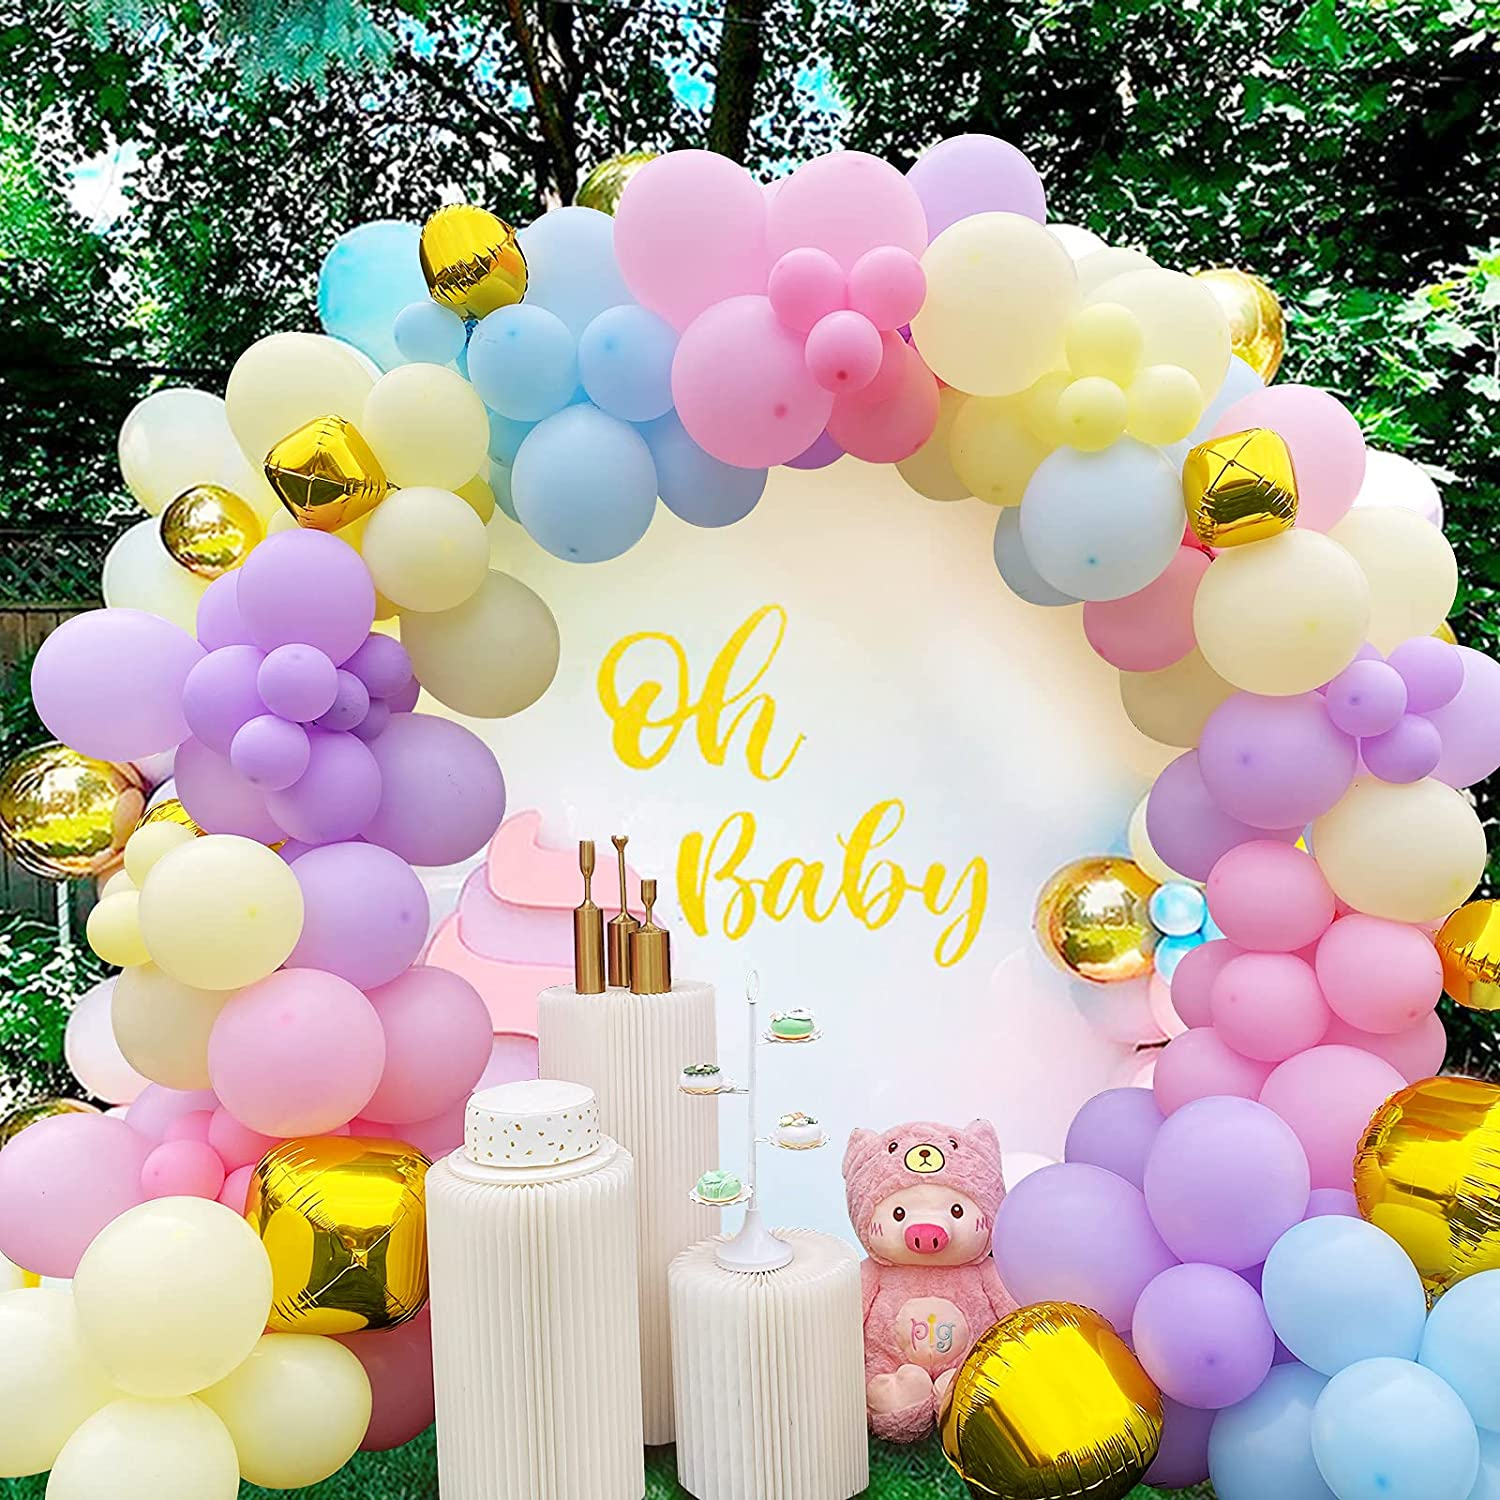 122pcs Assorted Latex Balloons Arch Garland Kit Happy Birthday Decorations Blue Gold Pink Colors Party Decor Supplies for Wedding Baby